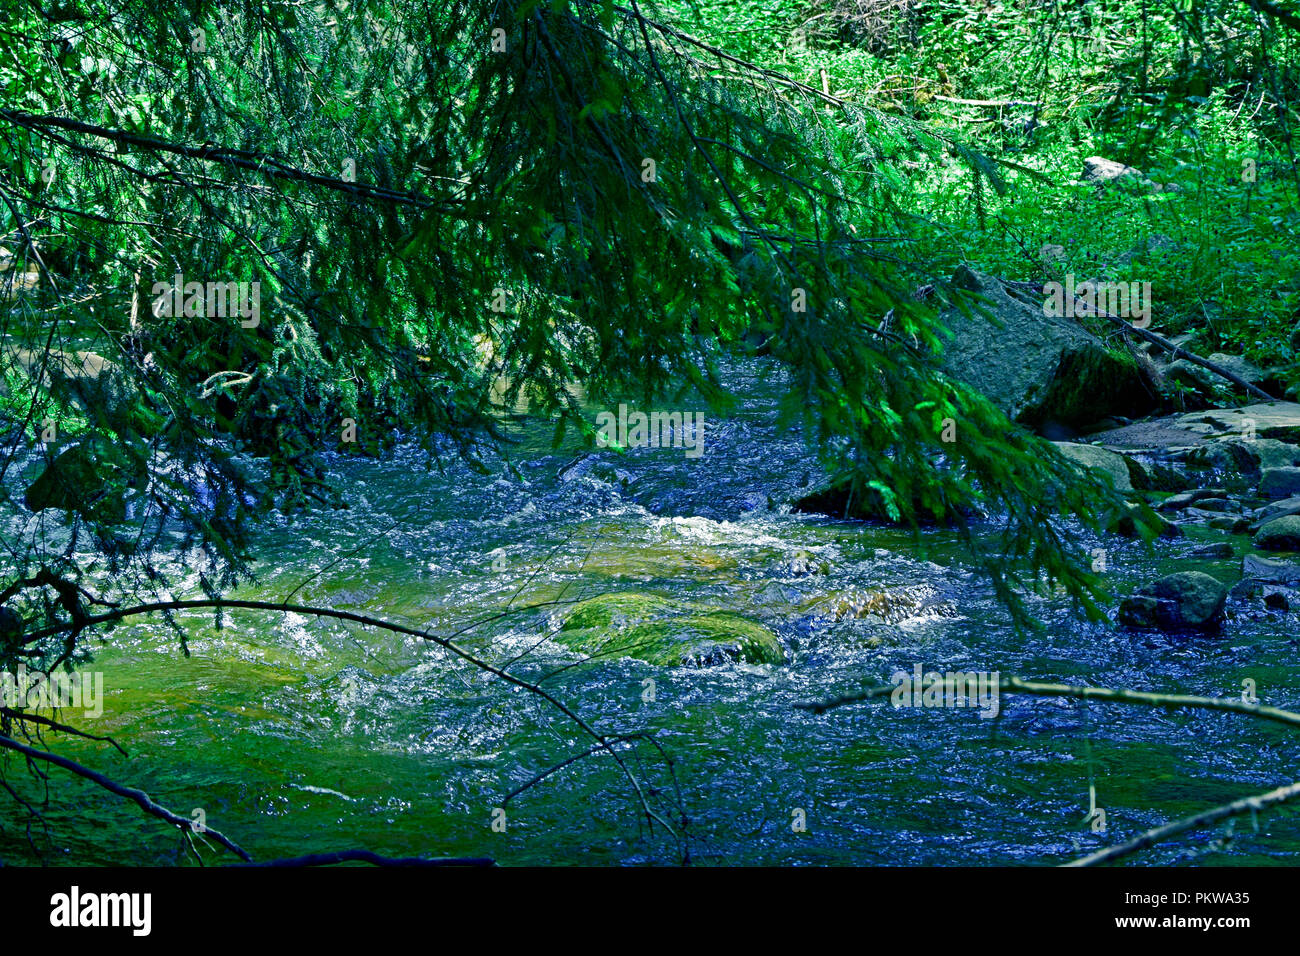 Green shadow cast by spruces on the crystal-clear water of a fast streaming brook - Stock Image